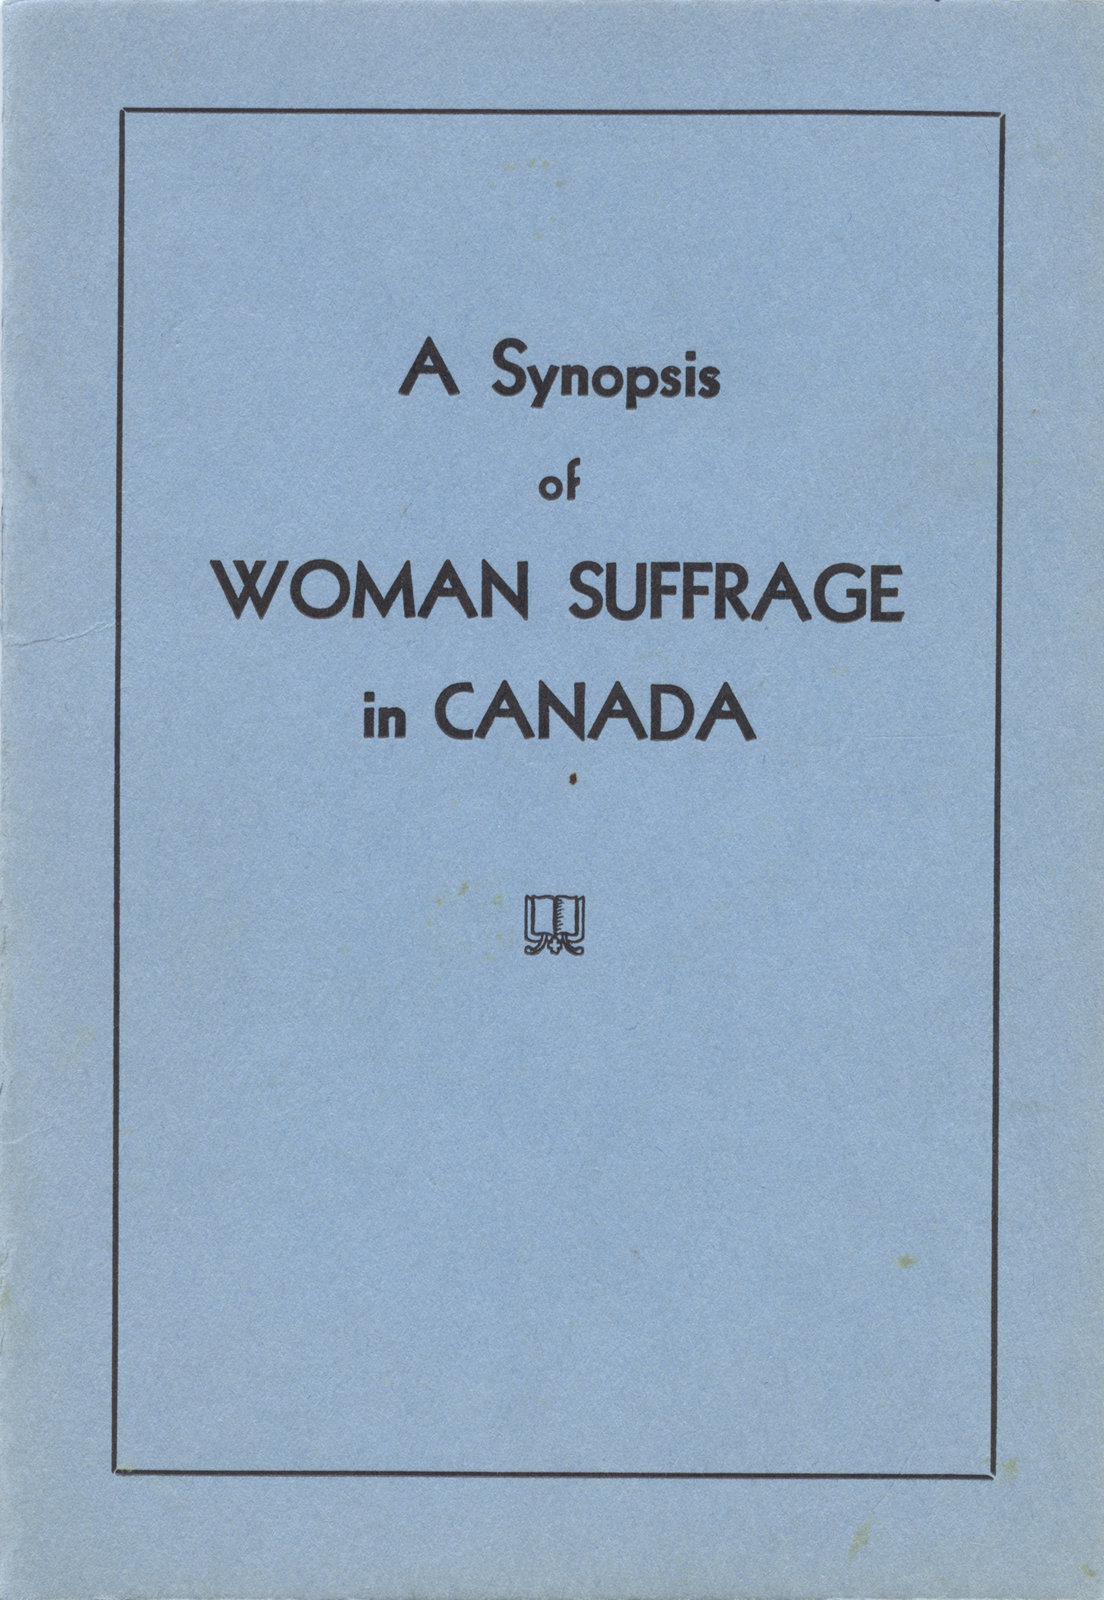 Courtesy the Wilfrid Laurier University Archives.